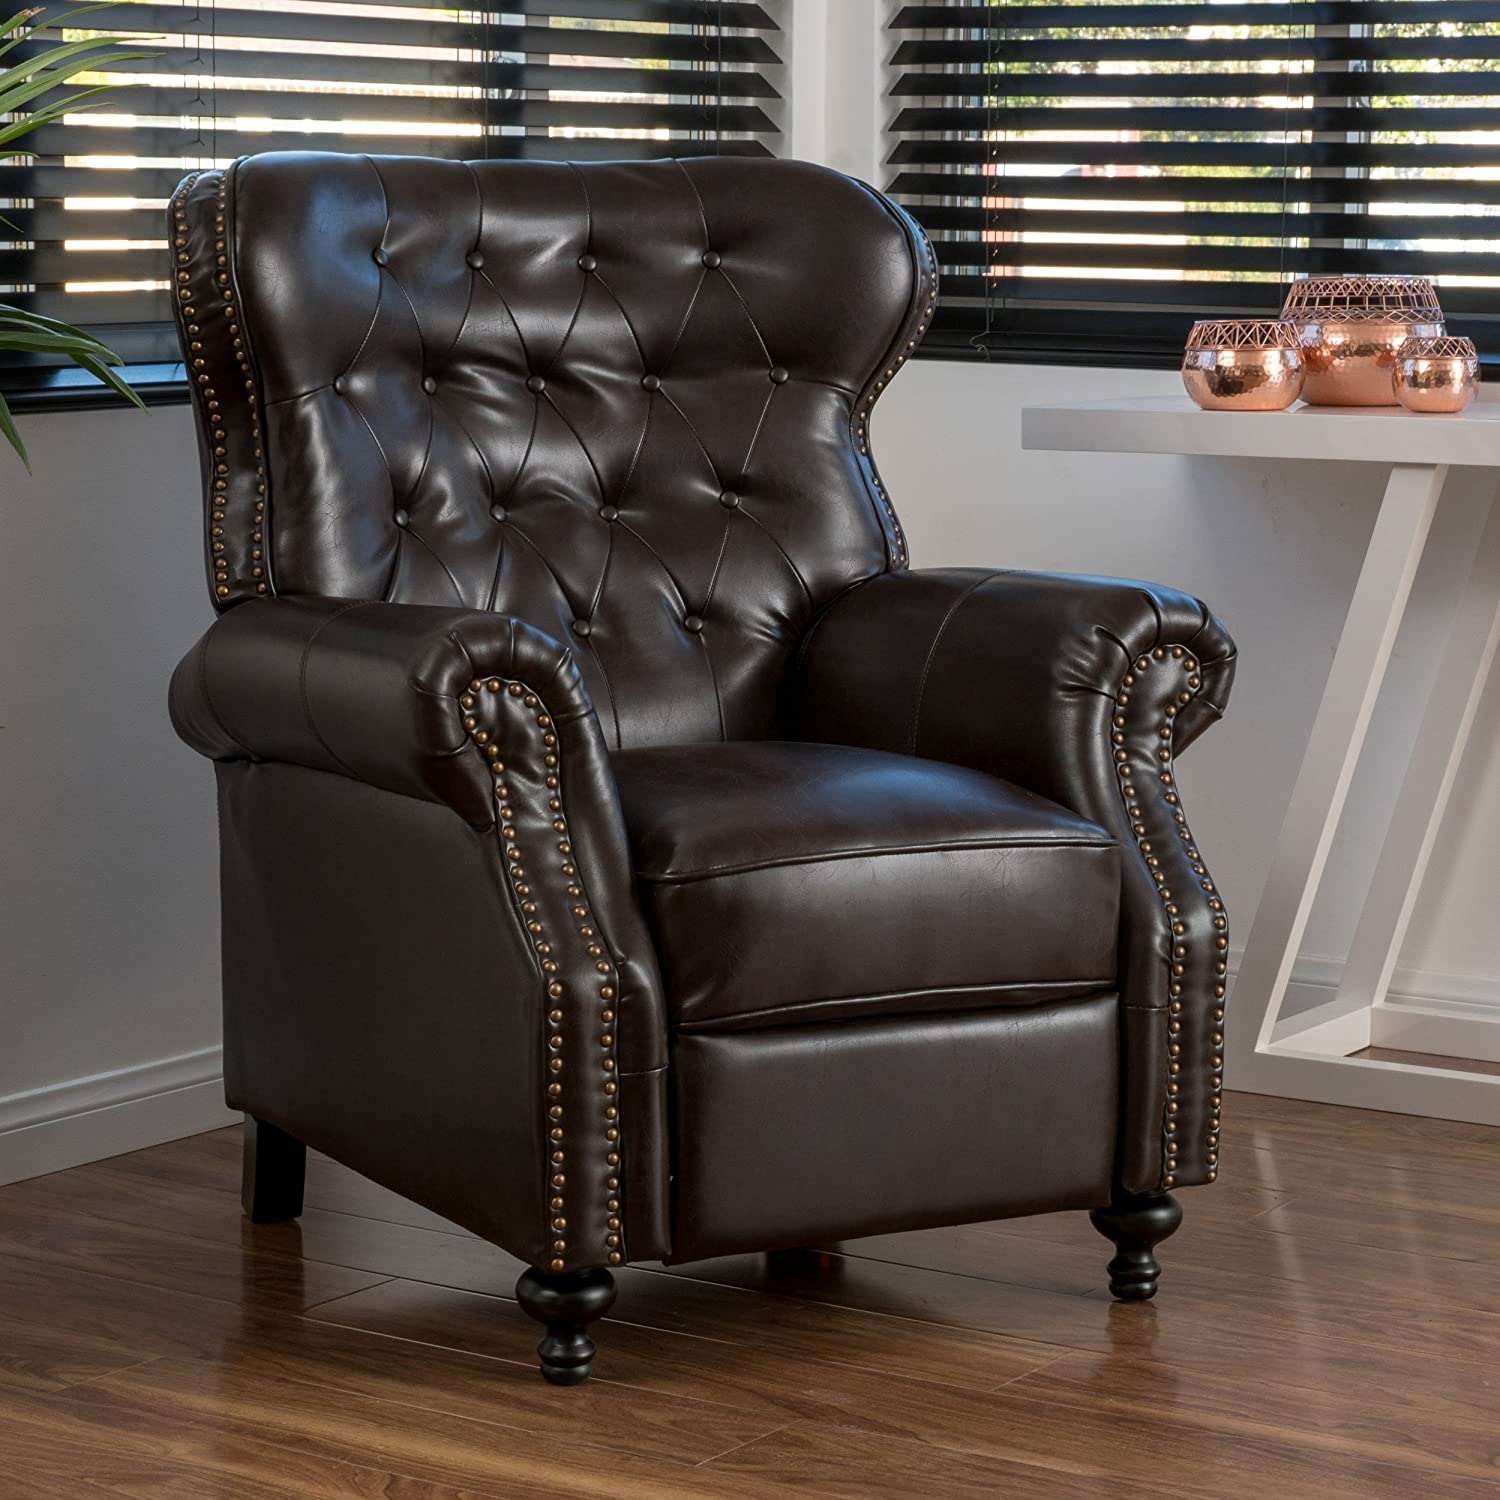 & Amazon.com: Waldo Brown Leather Recliner Club Chair: Kitchen u0026 Dining islam-shia.org